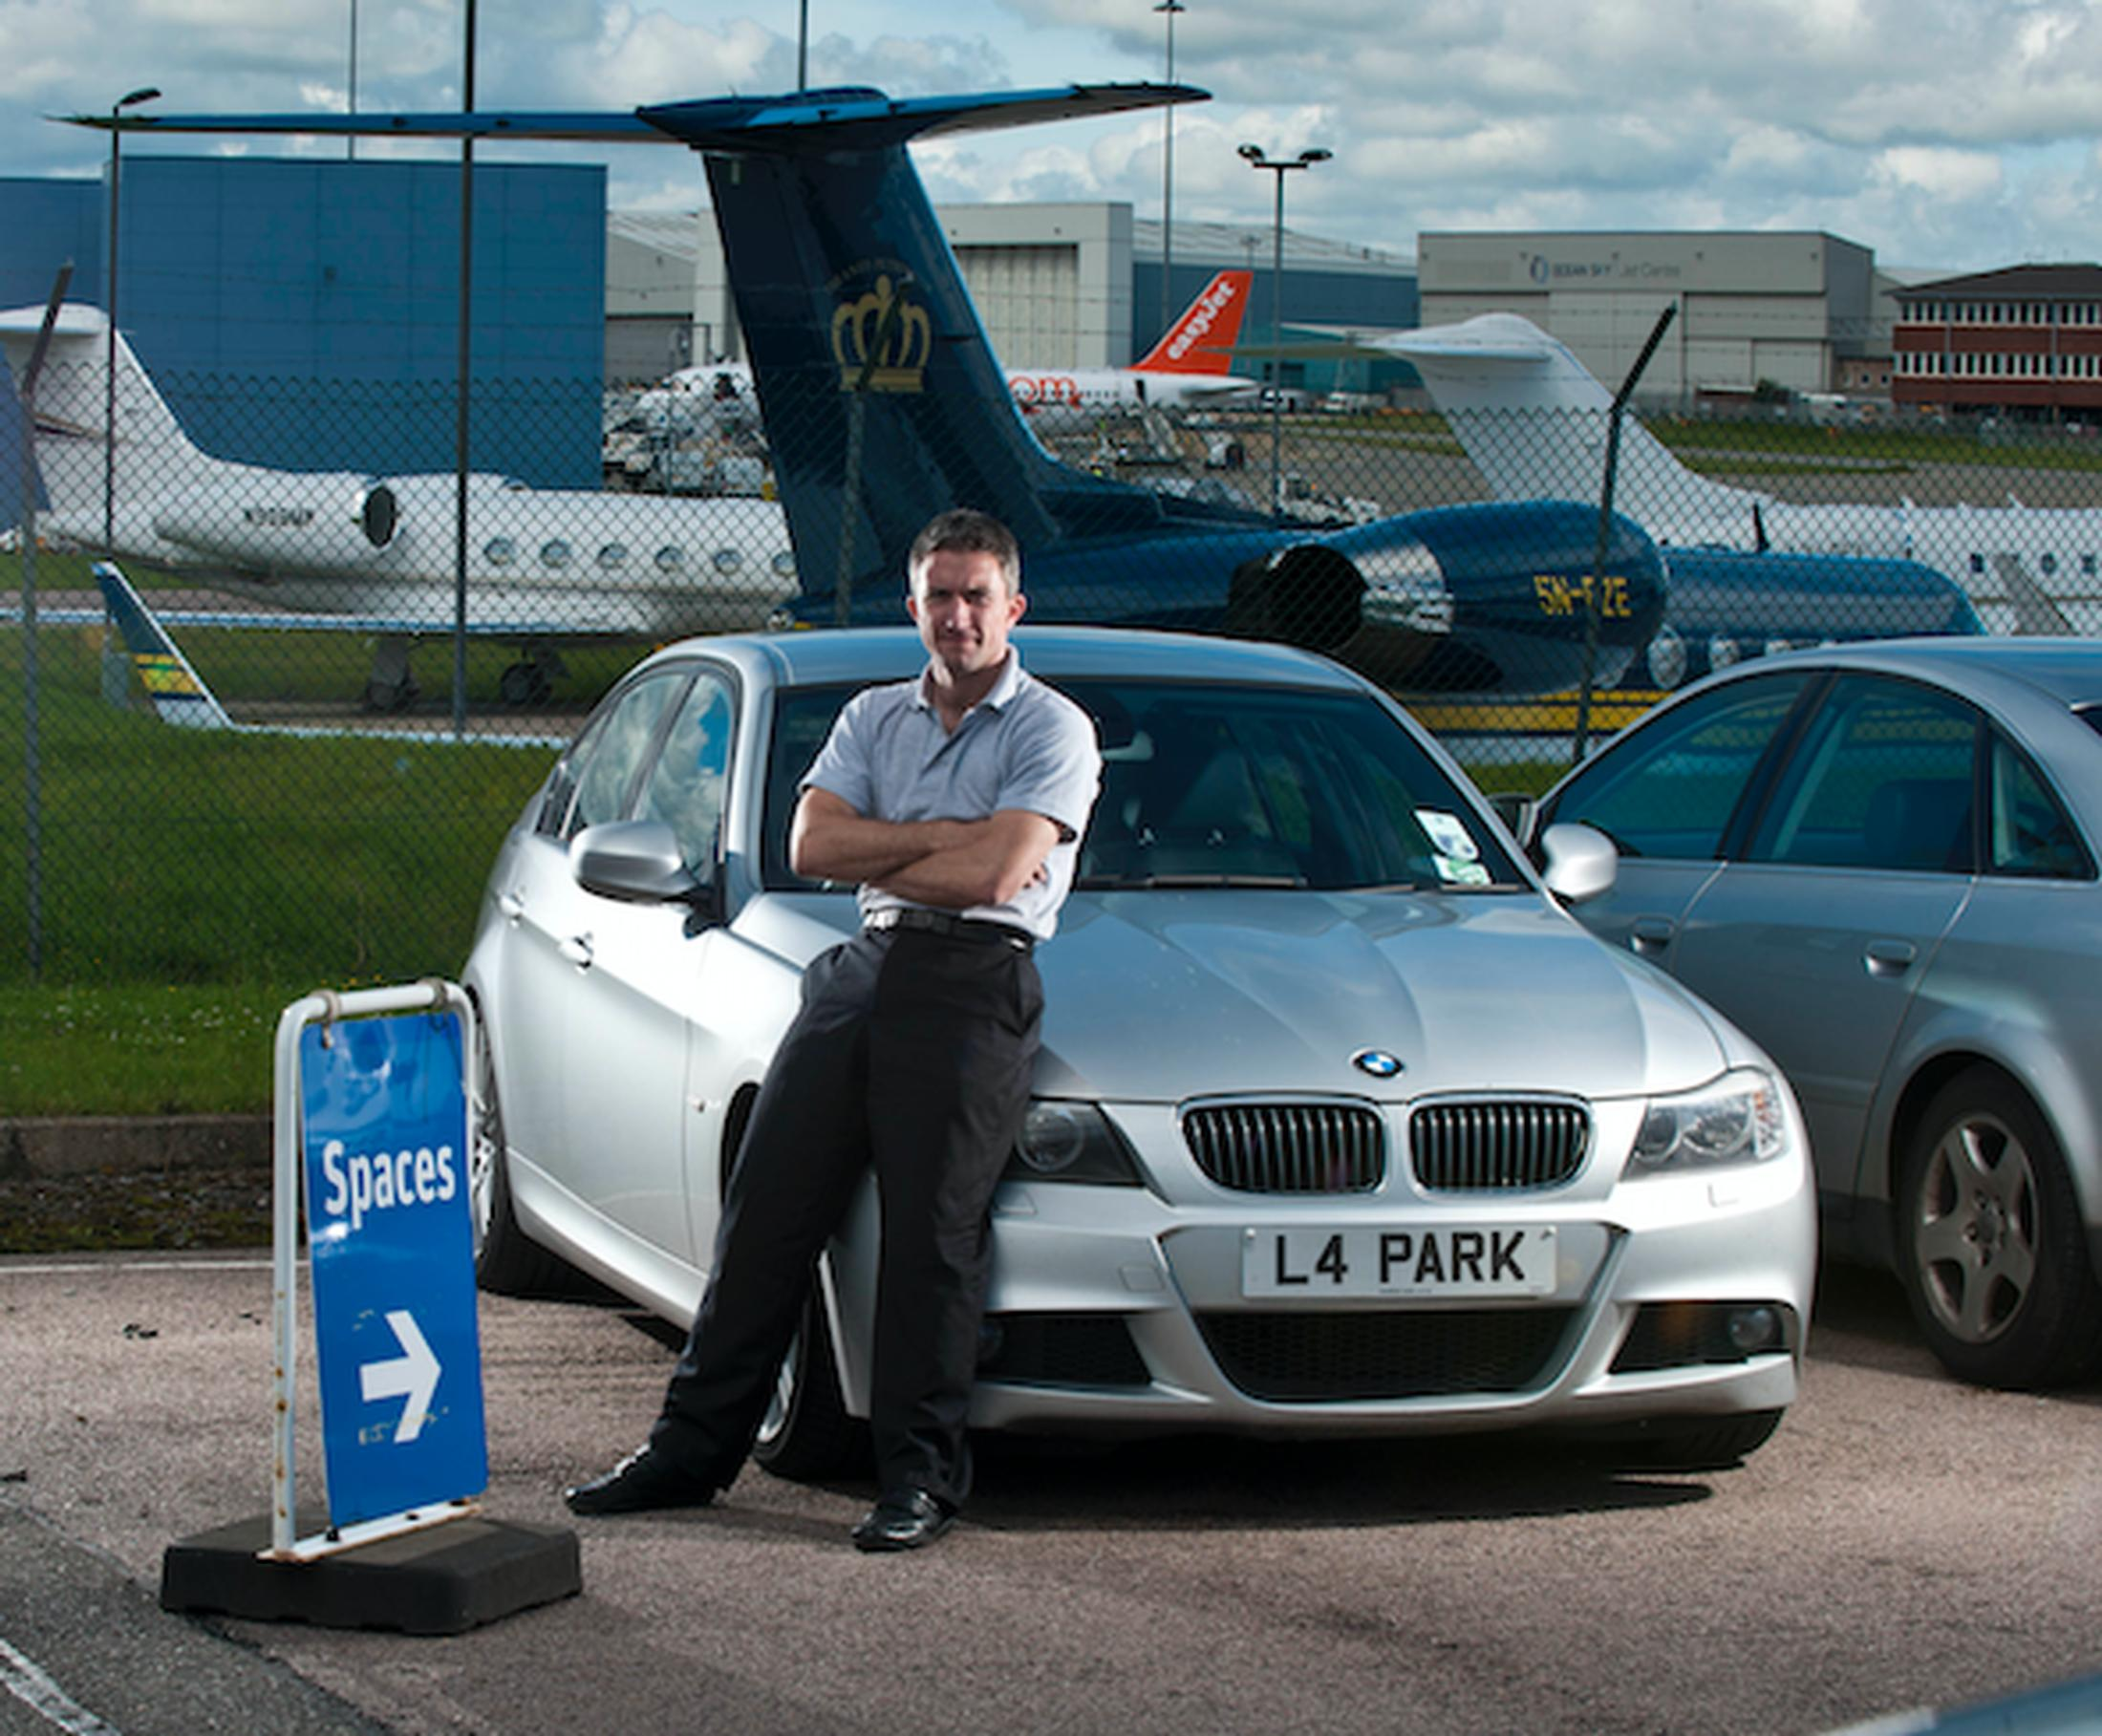 UK airport parking business acquires Australian company